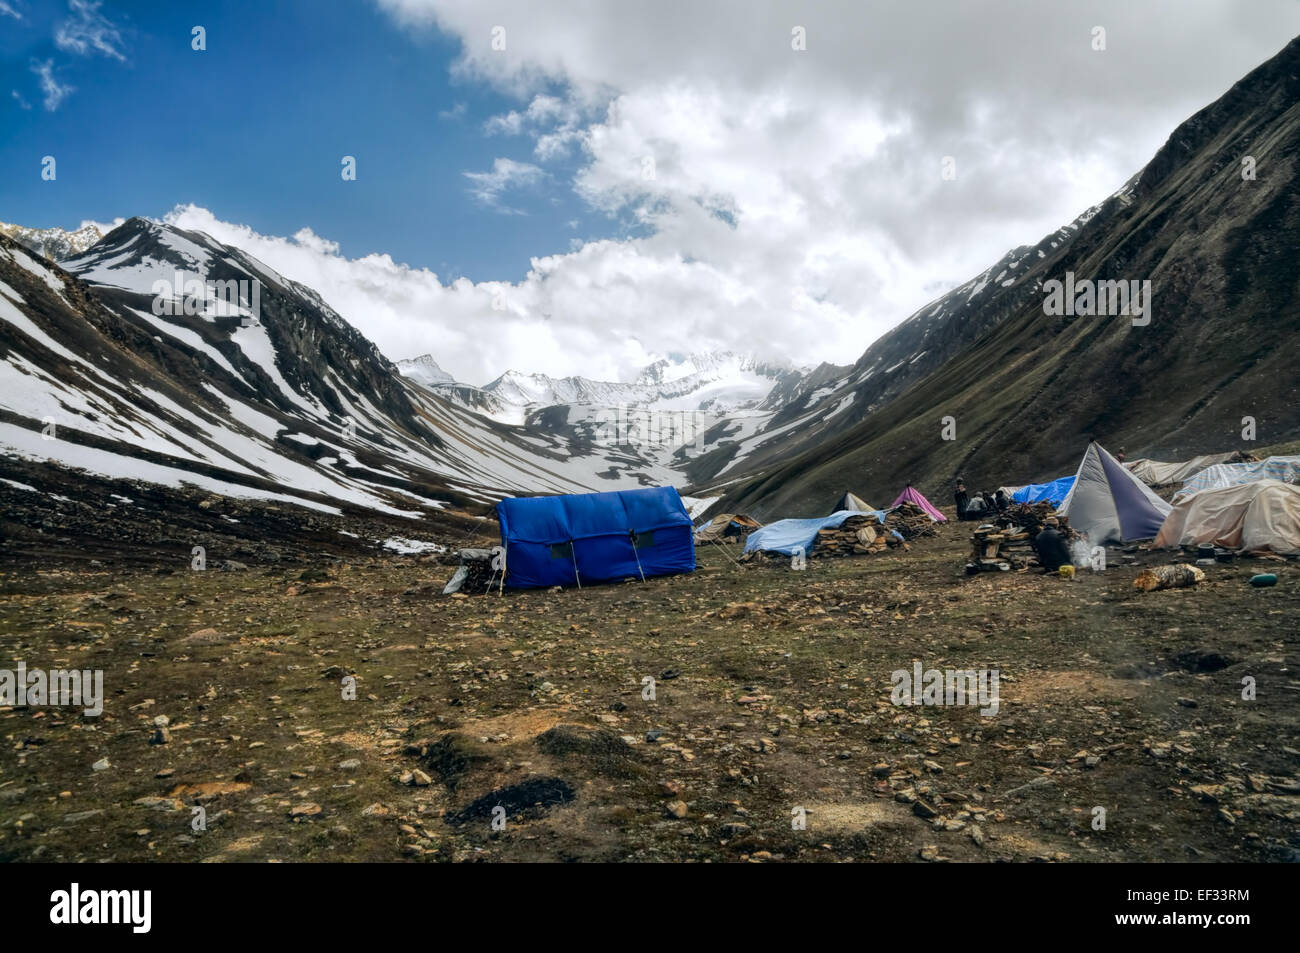 High altitude base camp in Himalayas mountains in Nepal - Stock Image